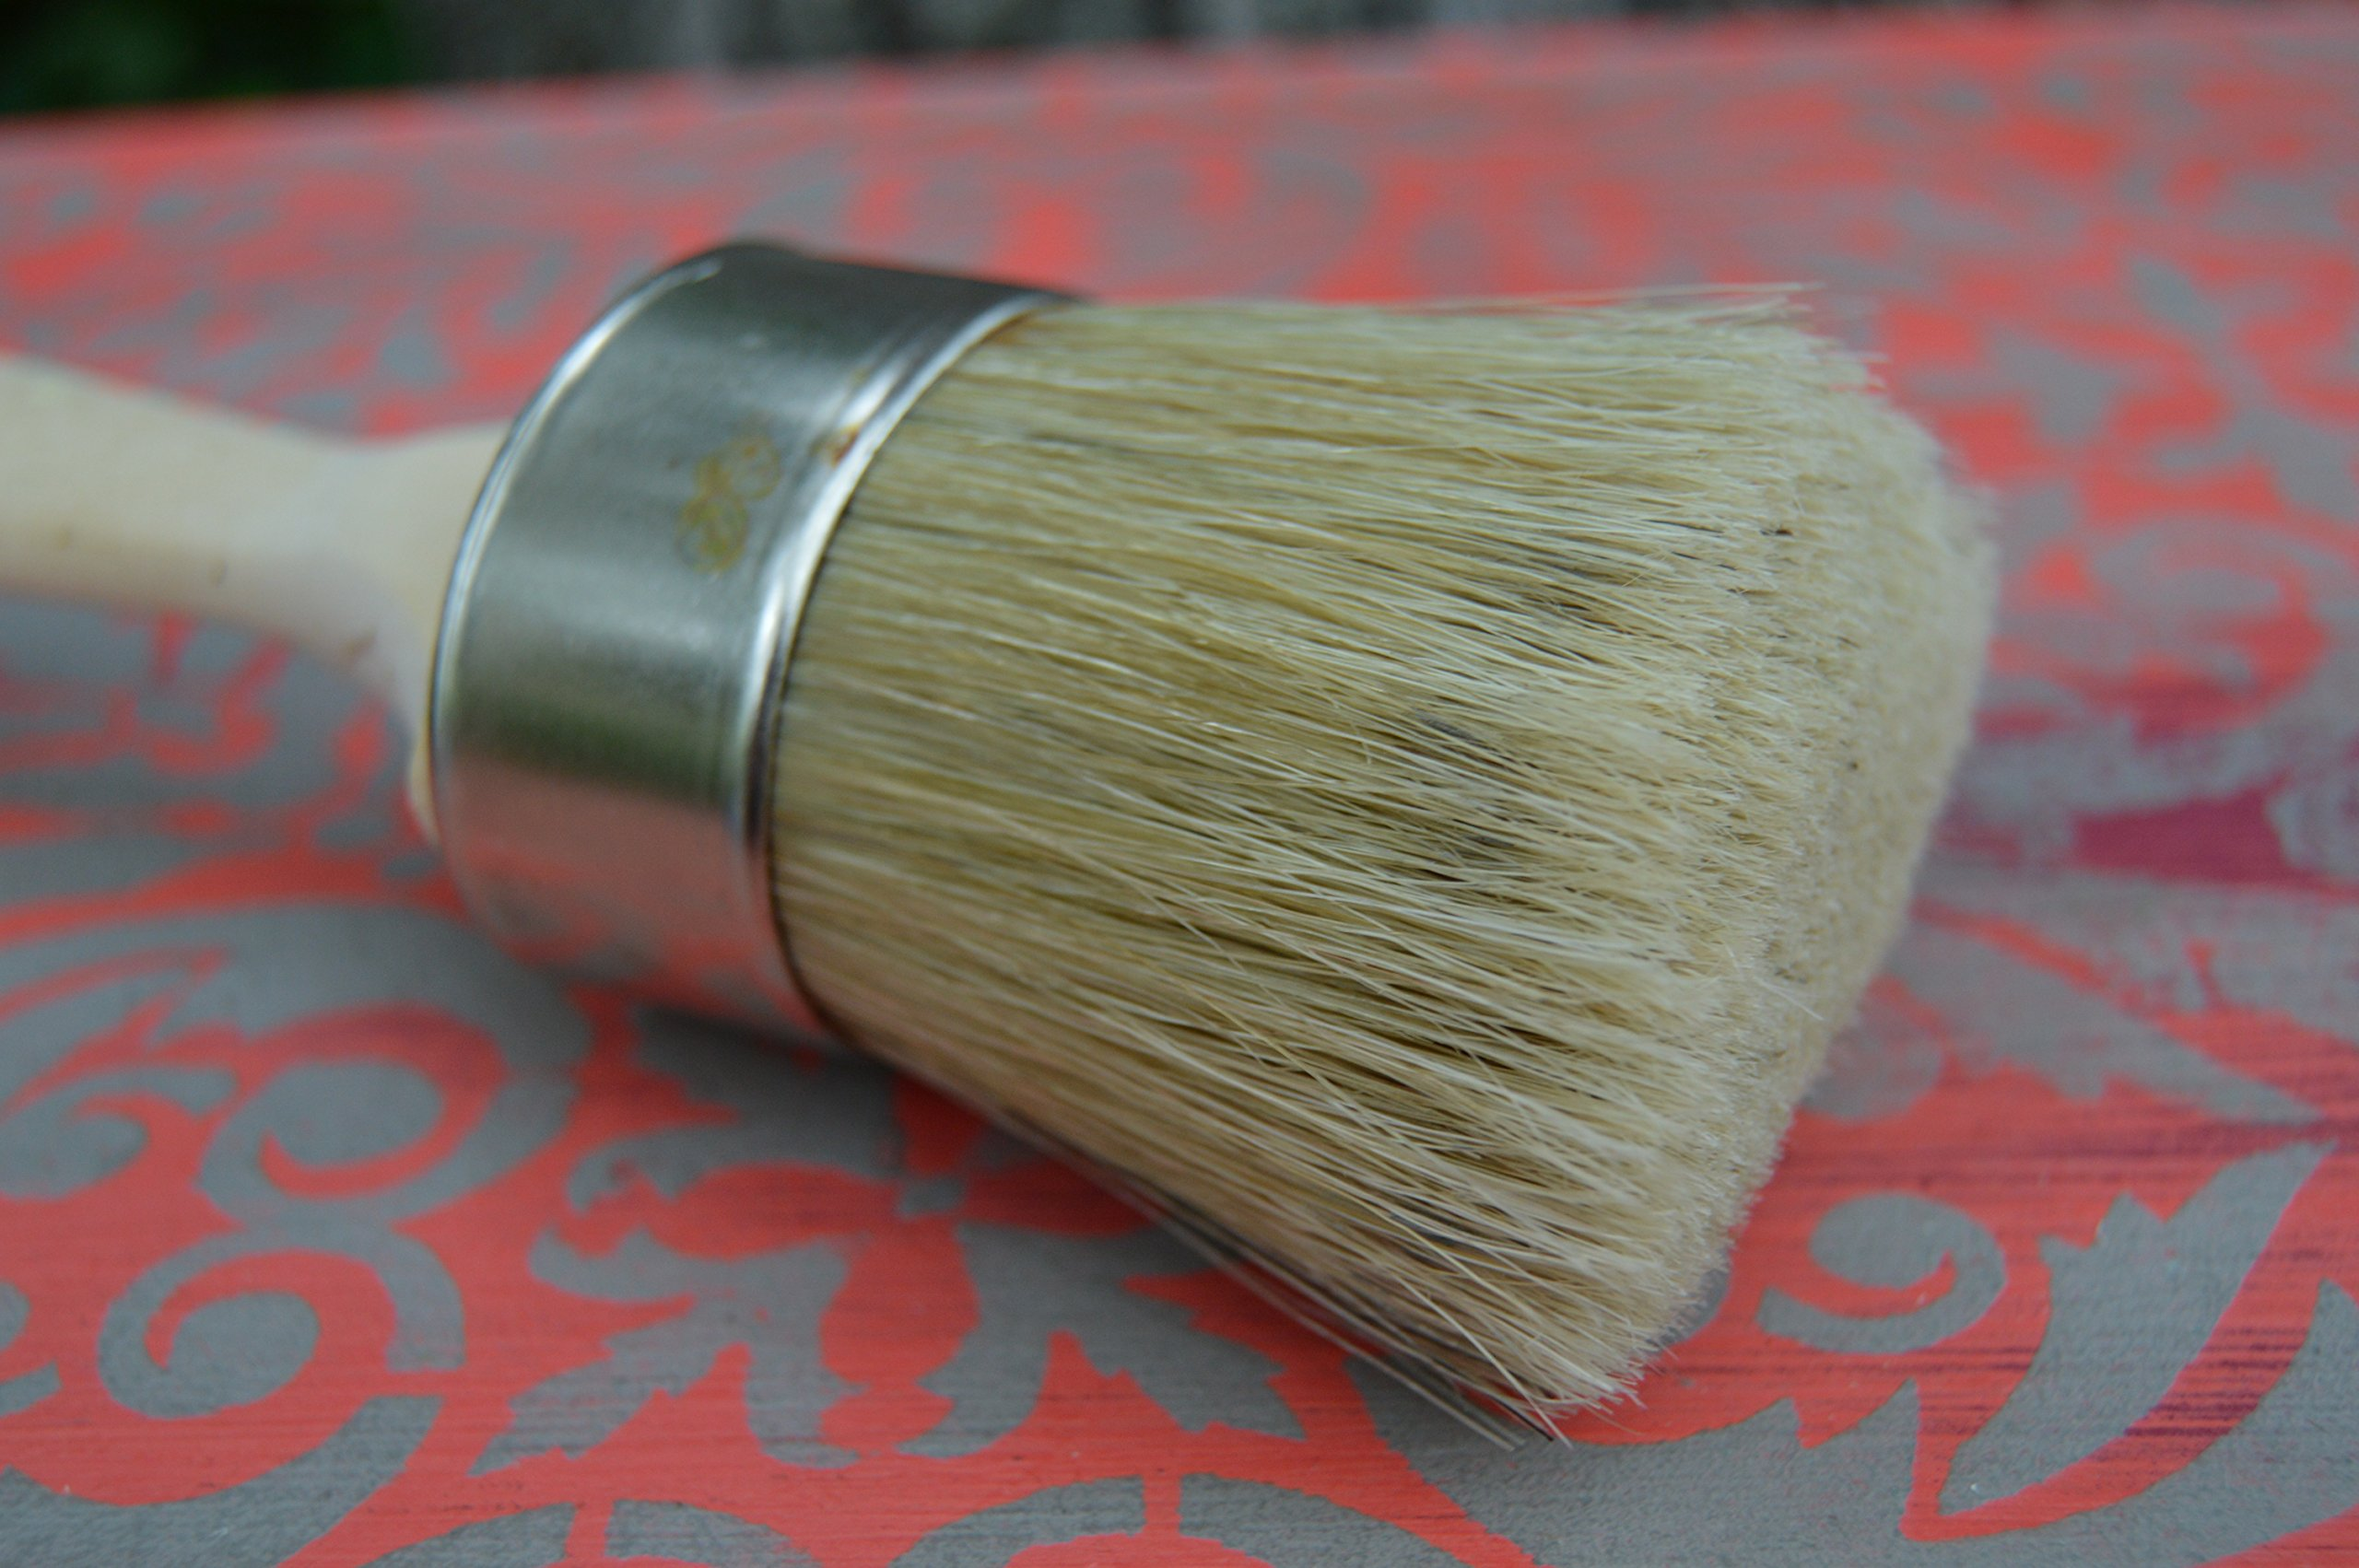 Chalkology - Oval Paint and Wax Brush, Medium,Professional Chalk Paint Wax Brush | Painting or Waxing | Annie Sloan Dark & Clear Soft Wax | Furniture, Stencils, Folkart, Home Decor, Wood